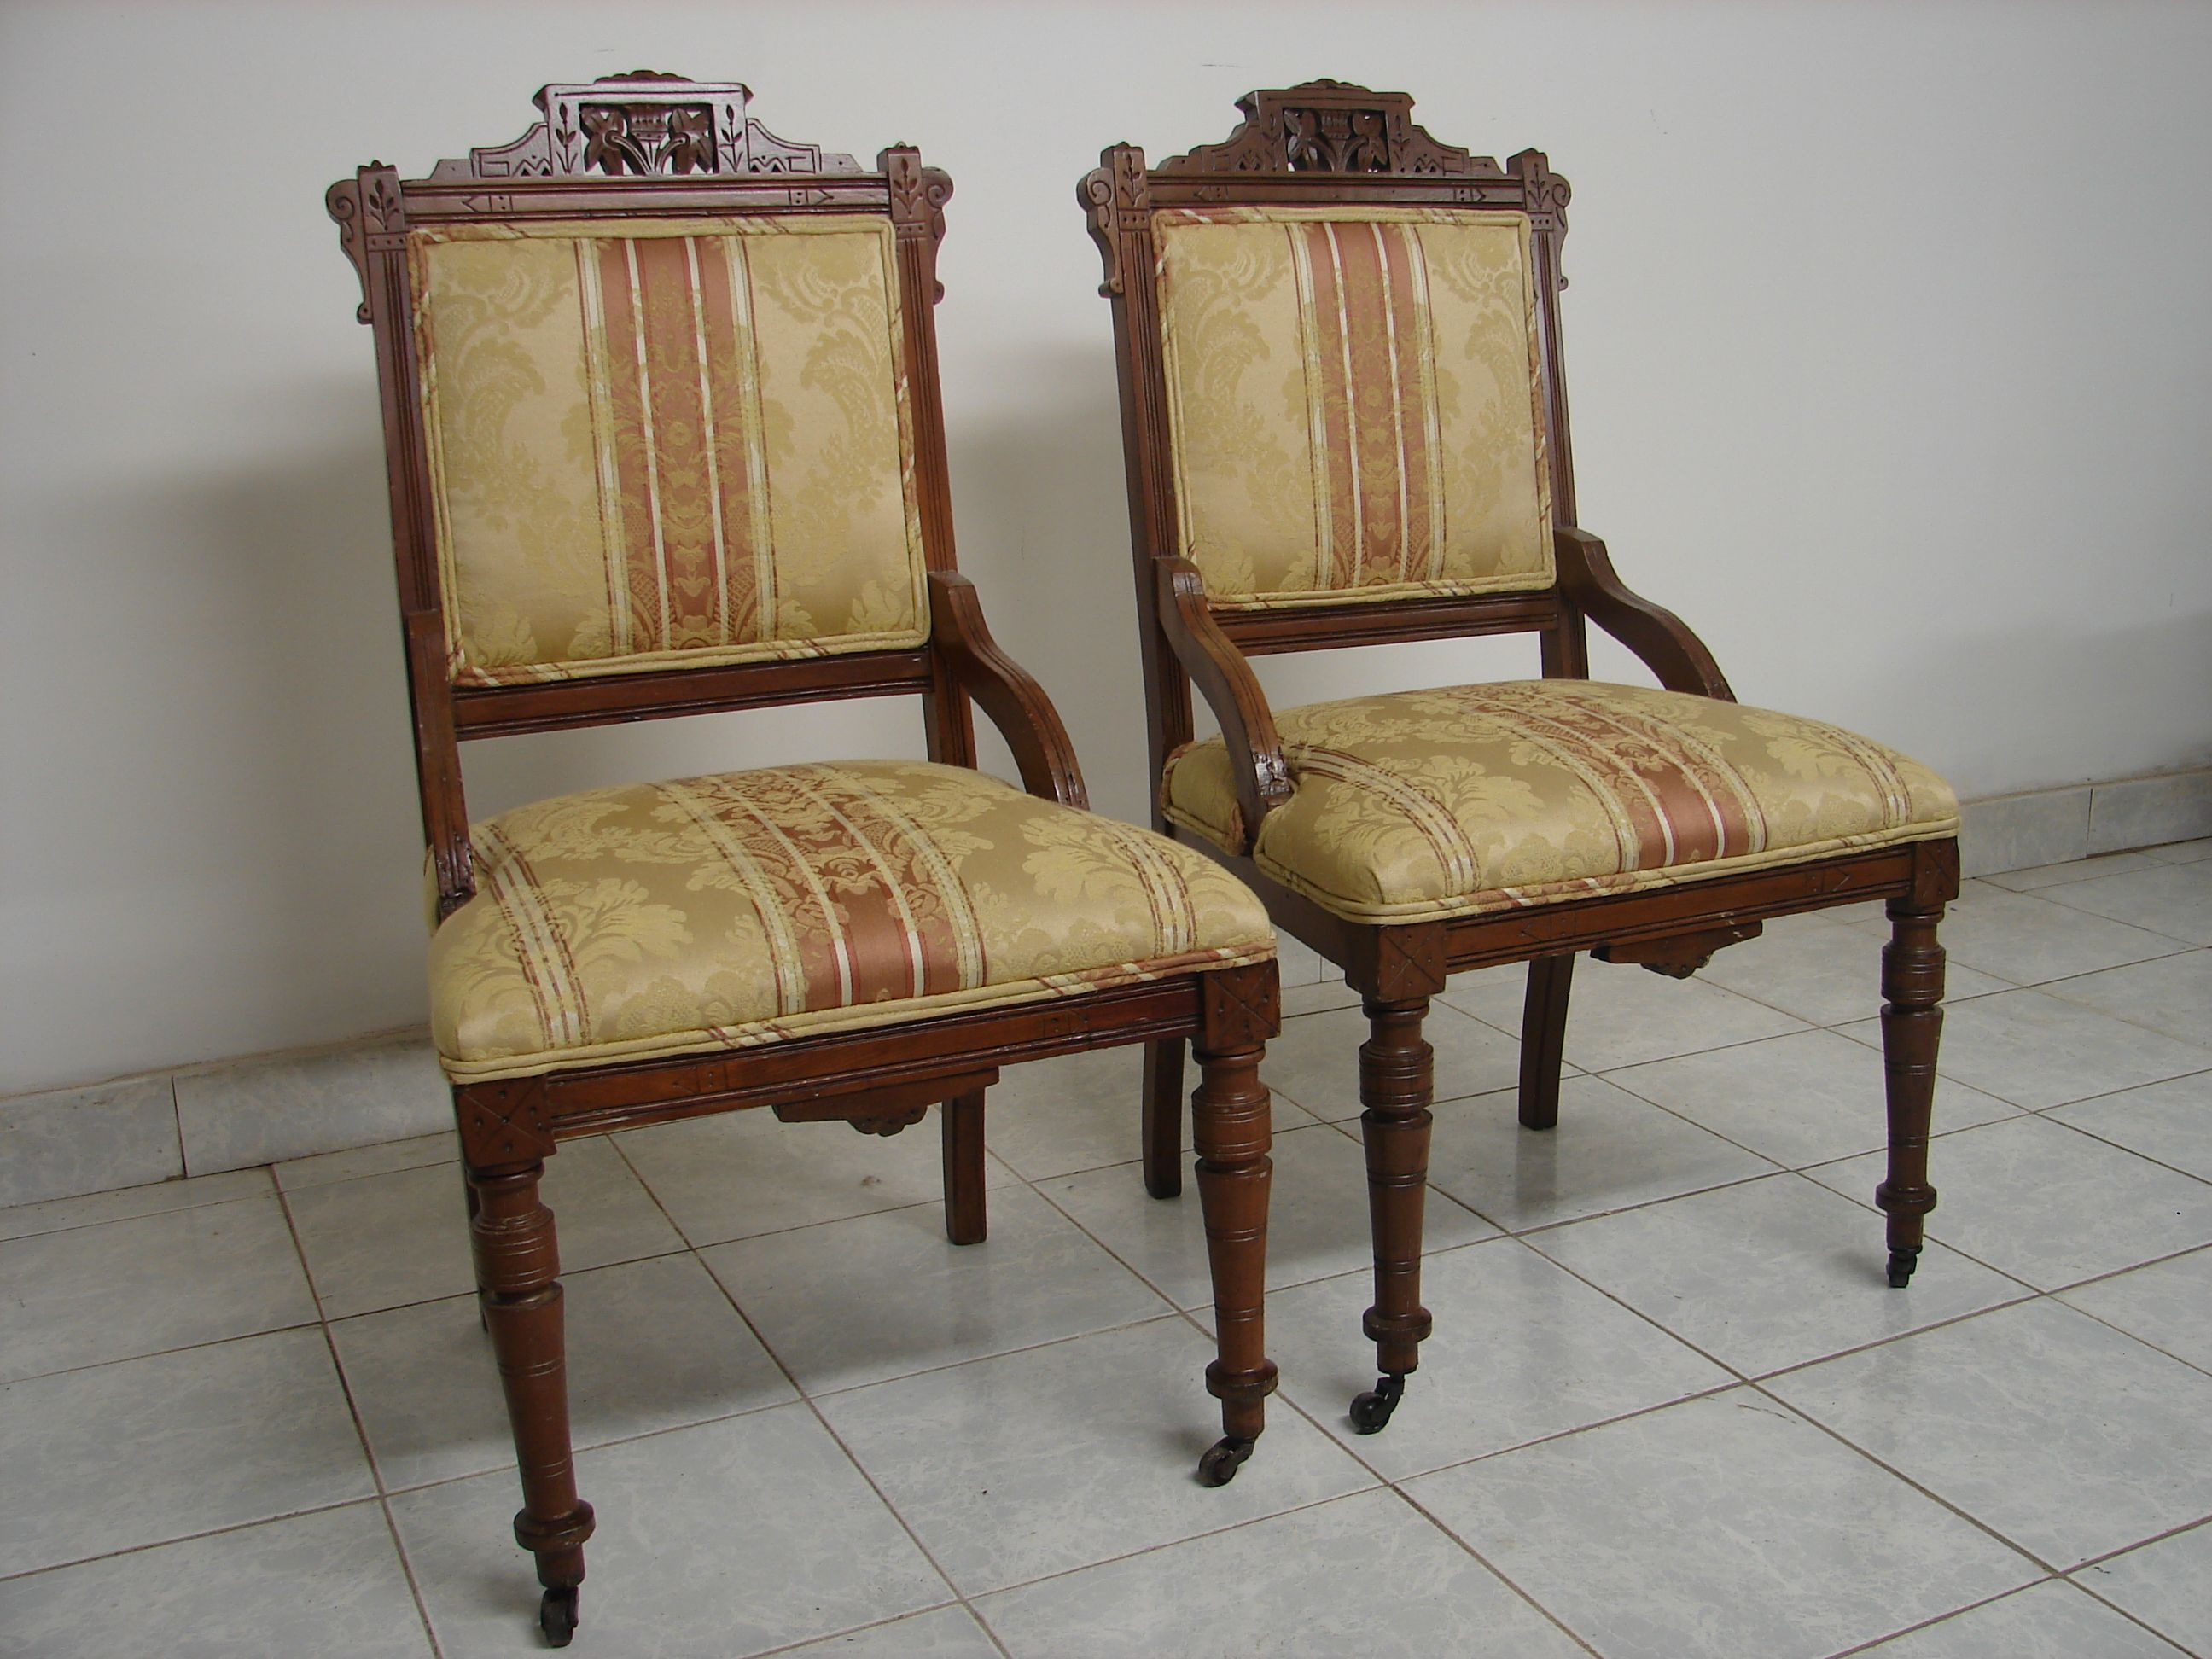 A Beautiful Pair Of Original Antique Eastlake Chairs. The Chairs Are In  Great Condition With